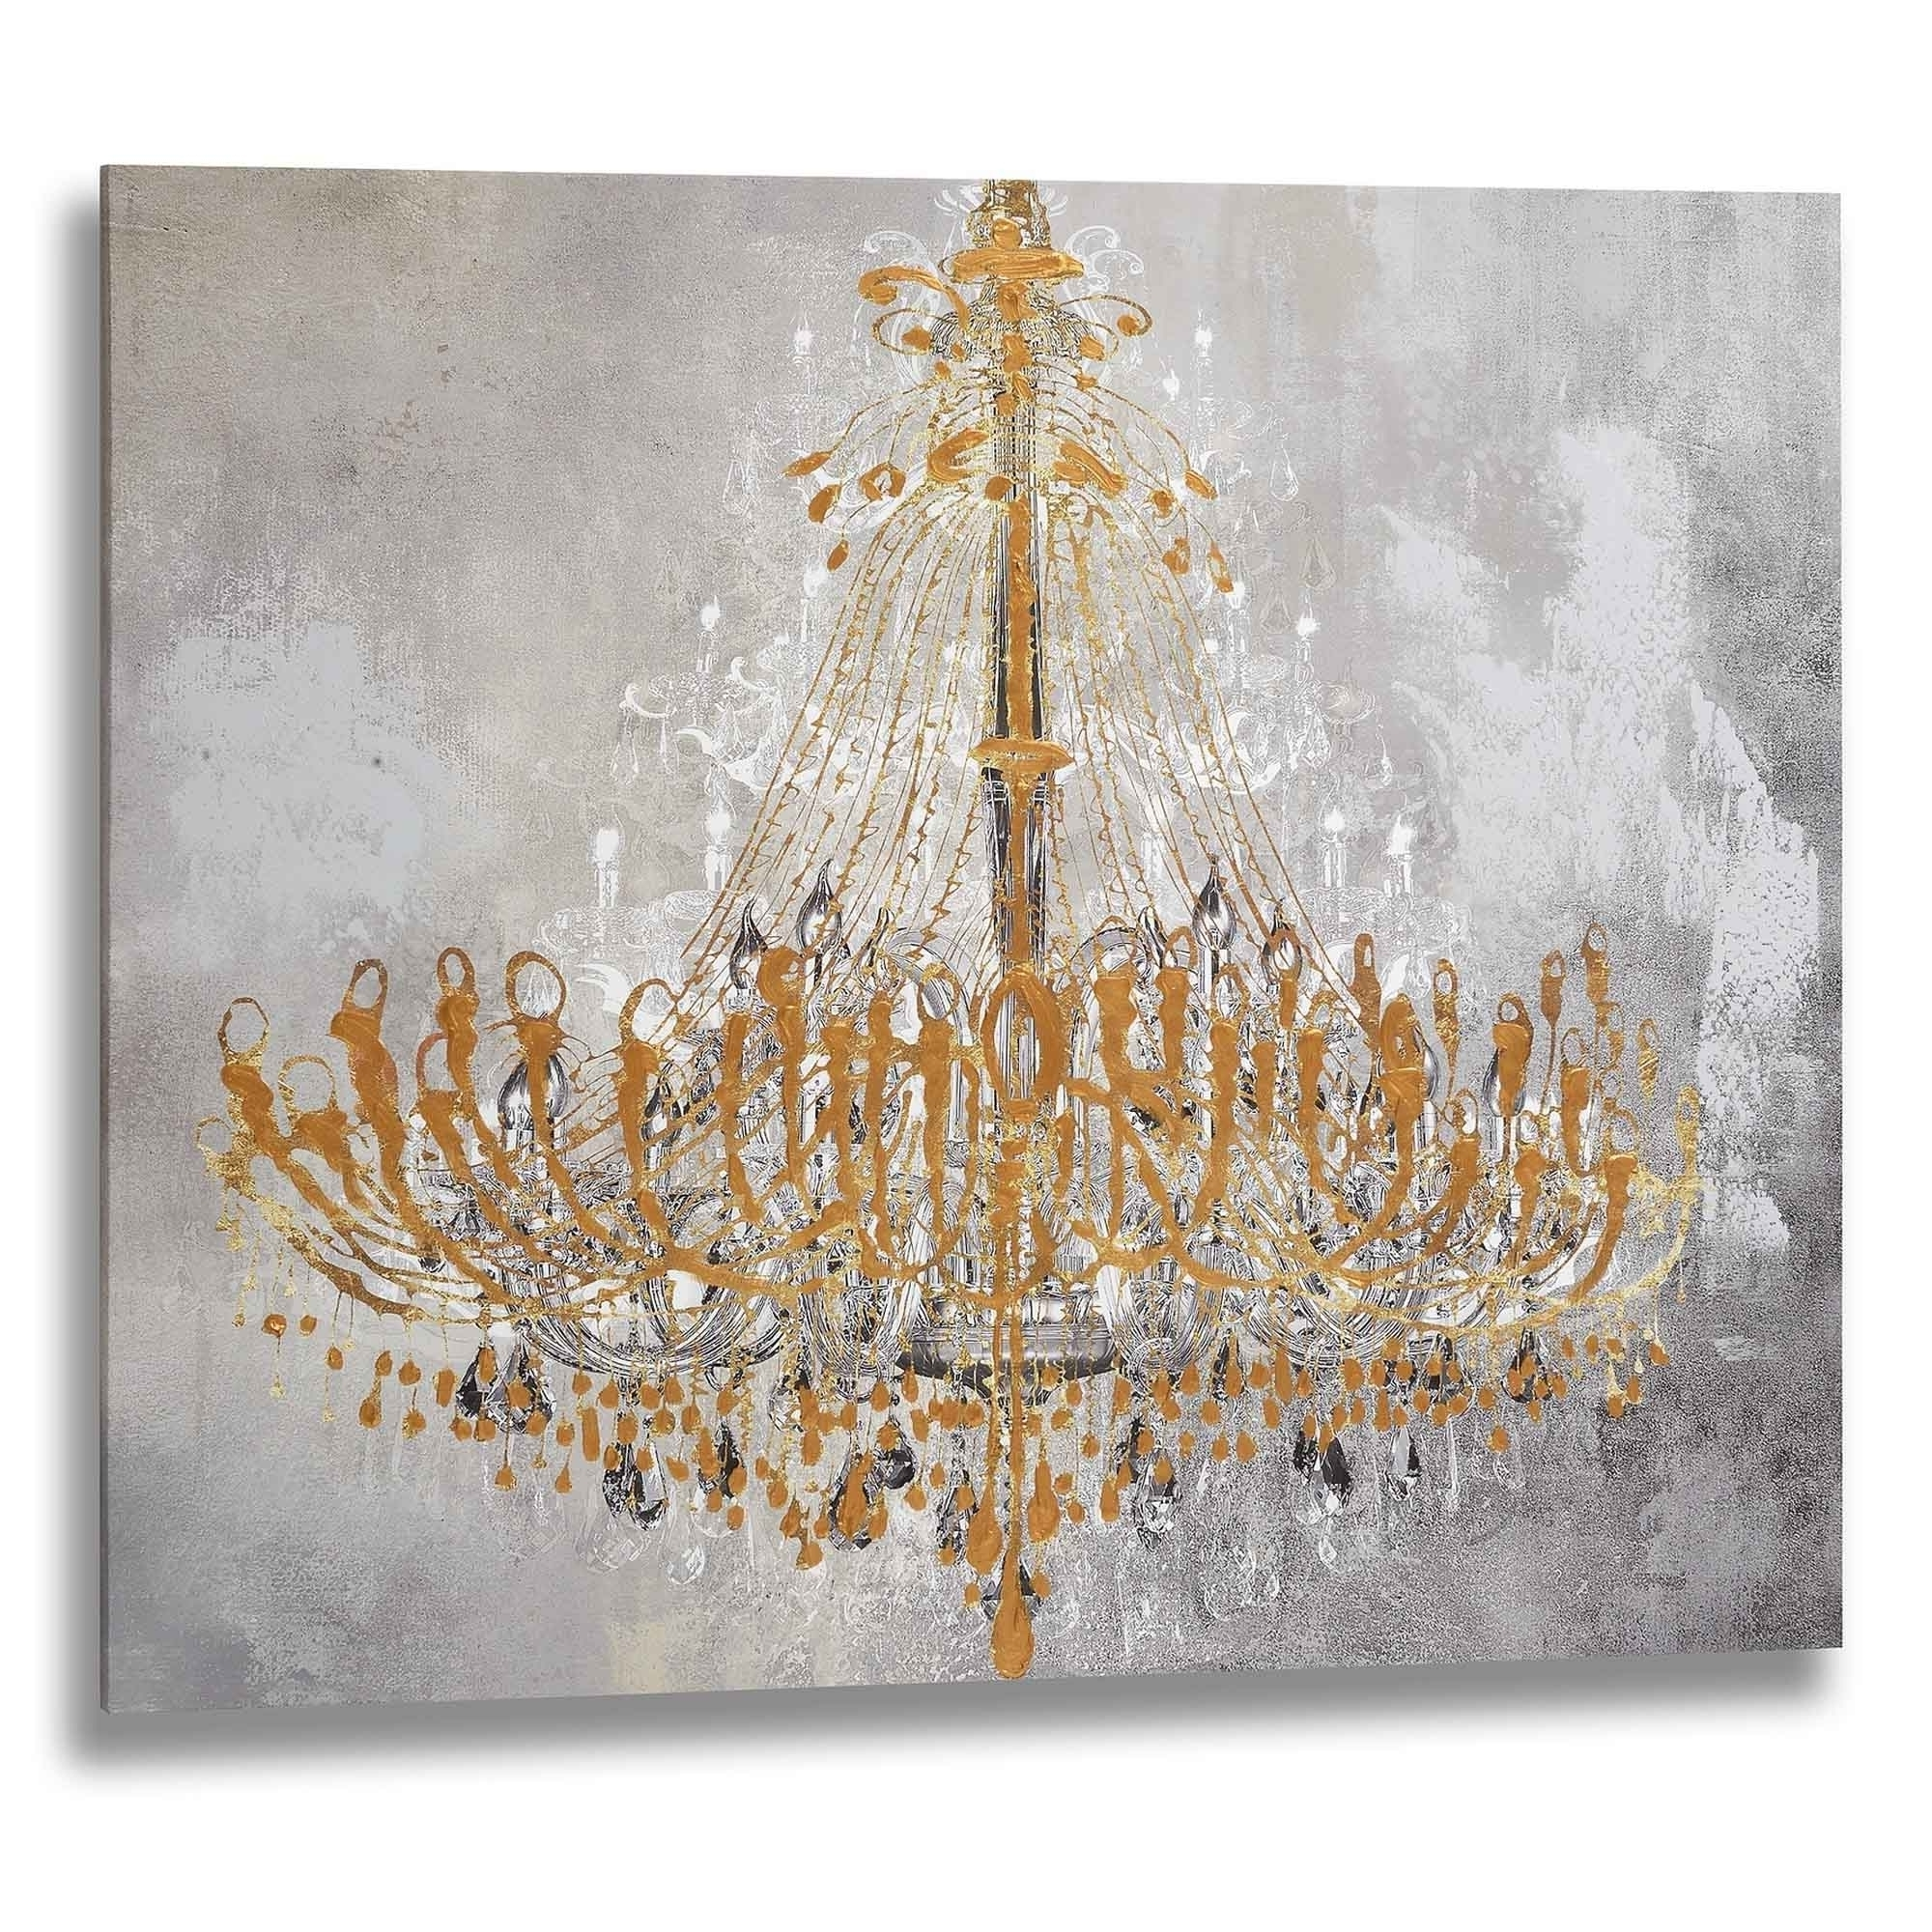 Chandelier Wall Art Pertaining To Trendy Gold Chandelier Wall Art (View 9 of 20)